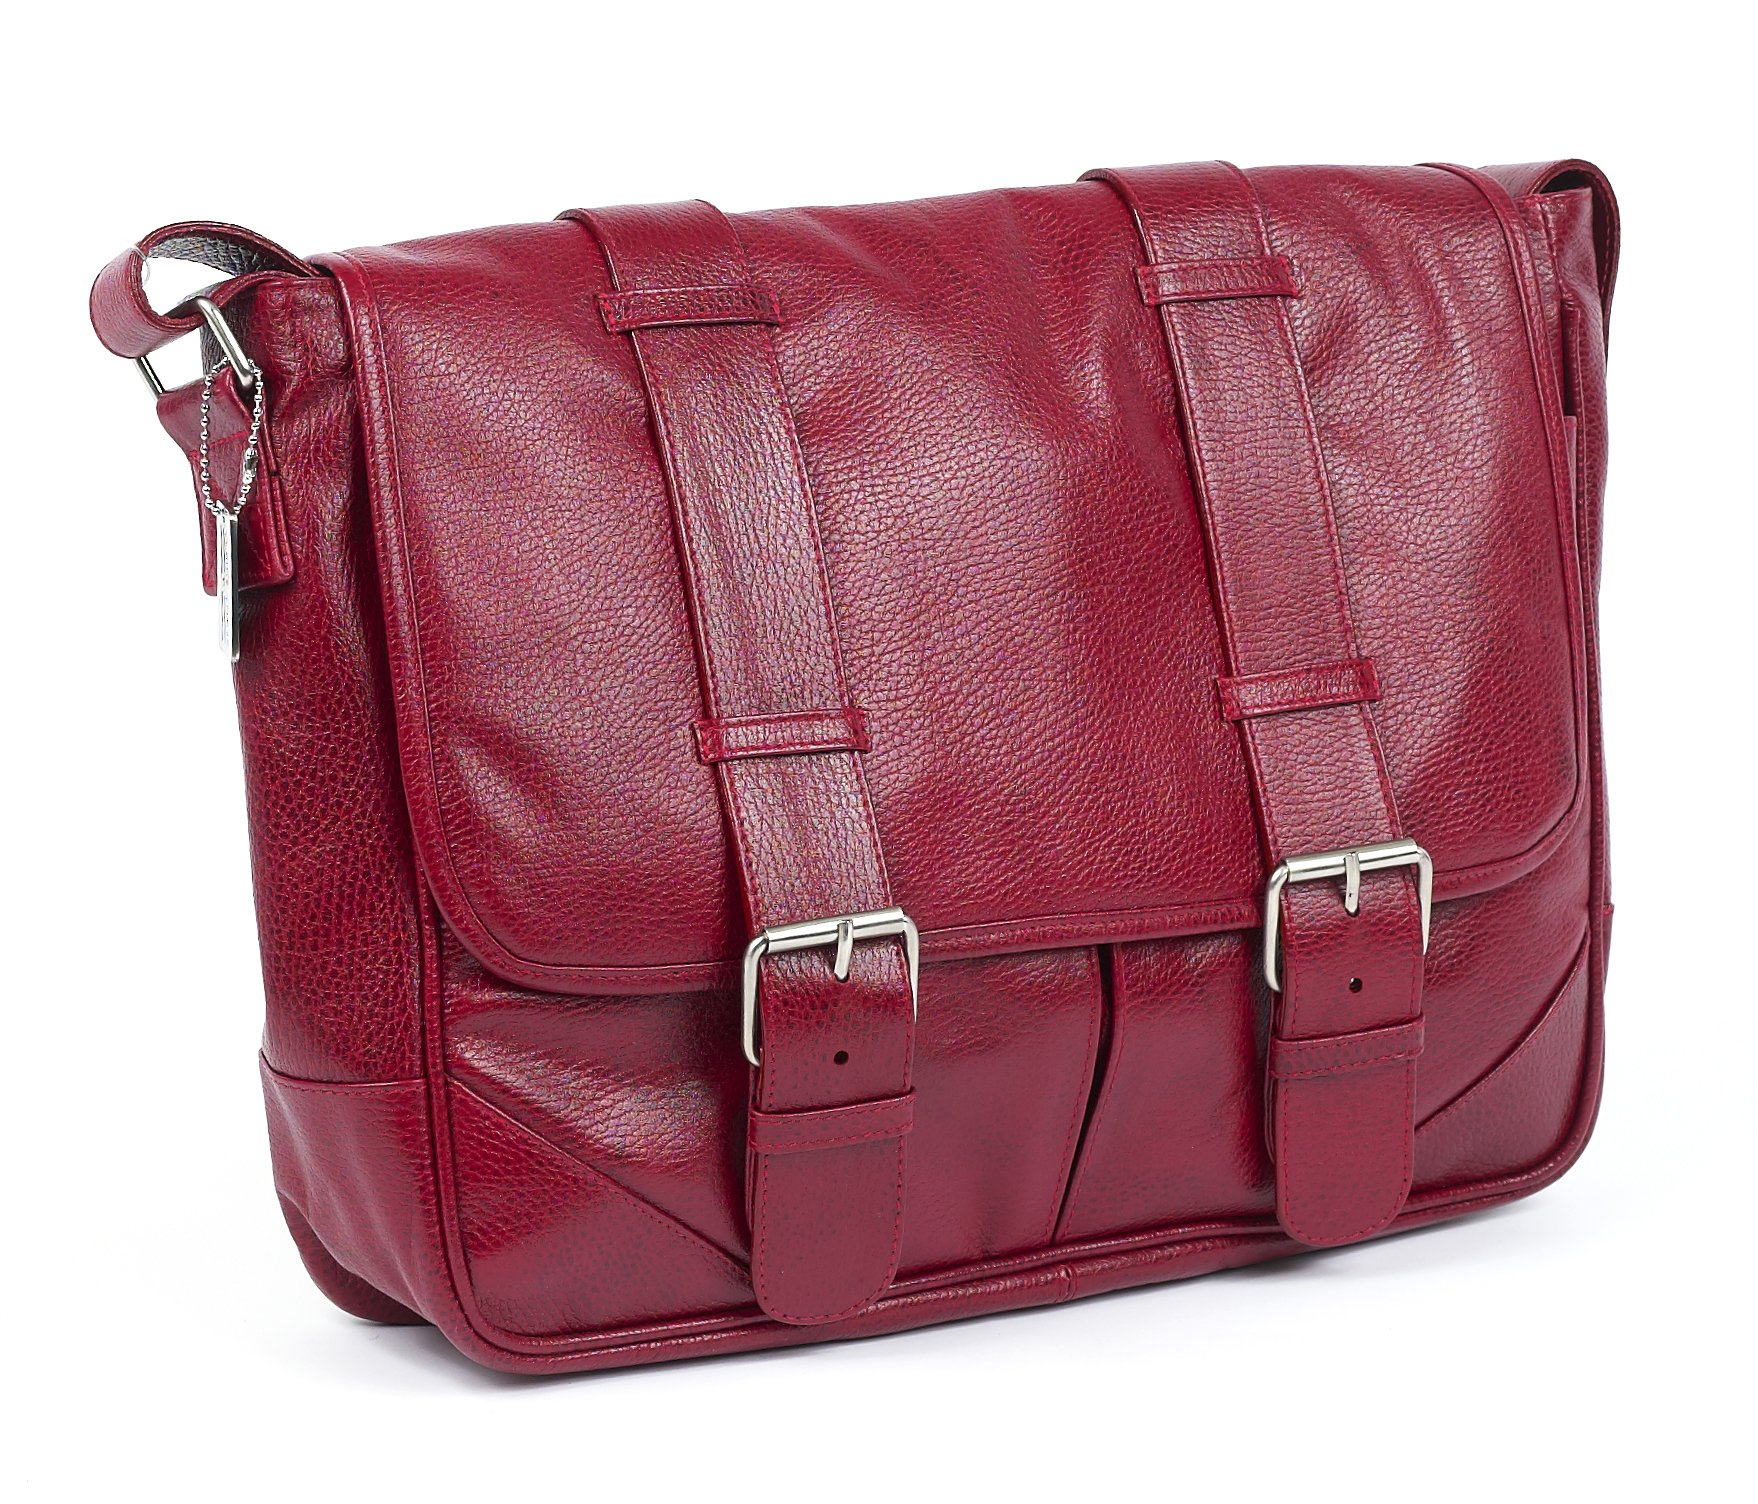 Claire Chase Sorrento Computer Messenger, Red, One Size